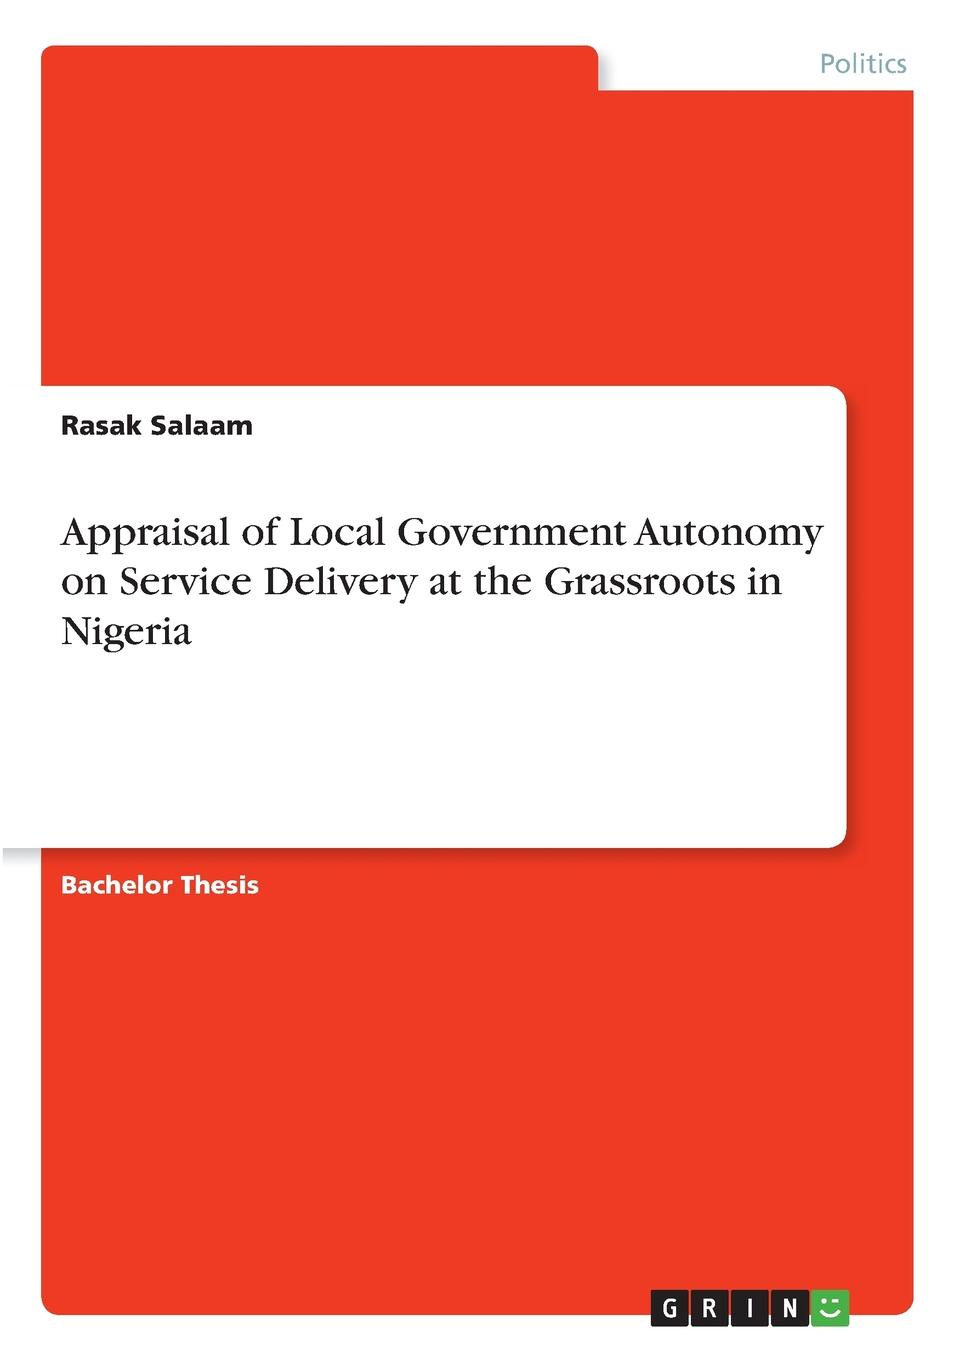 Rasak Salaam Appraisal of Local Government Autonomy on Service Delivery at the Grassroots in Nigeria regional ethnic autonomy in tibet